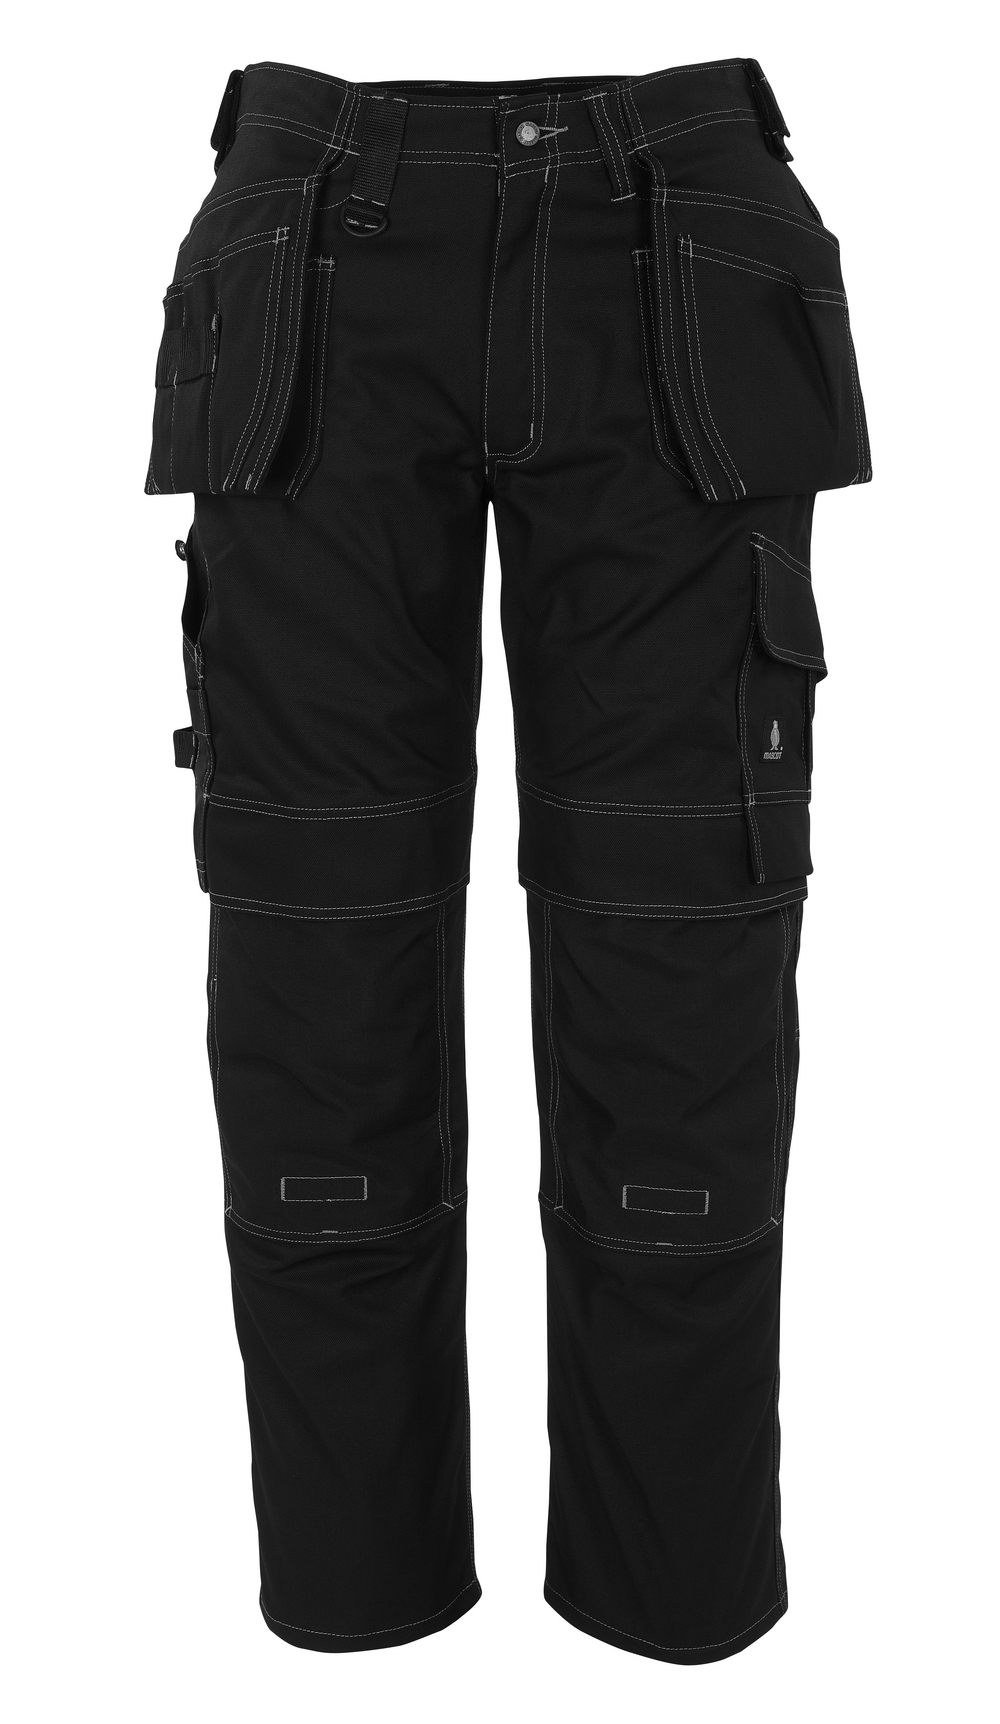 MASCOT RONDA CRAFTSMENS PANTS WITH KNEEPAD POCKETS